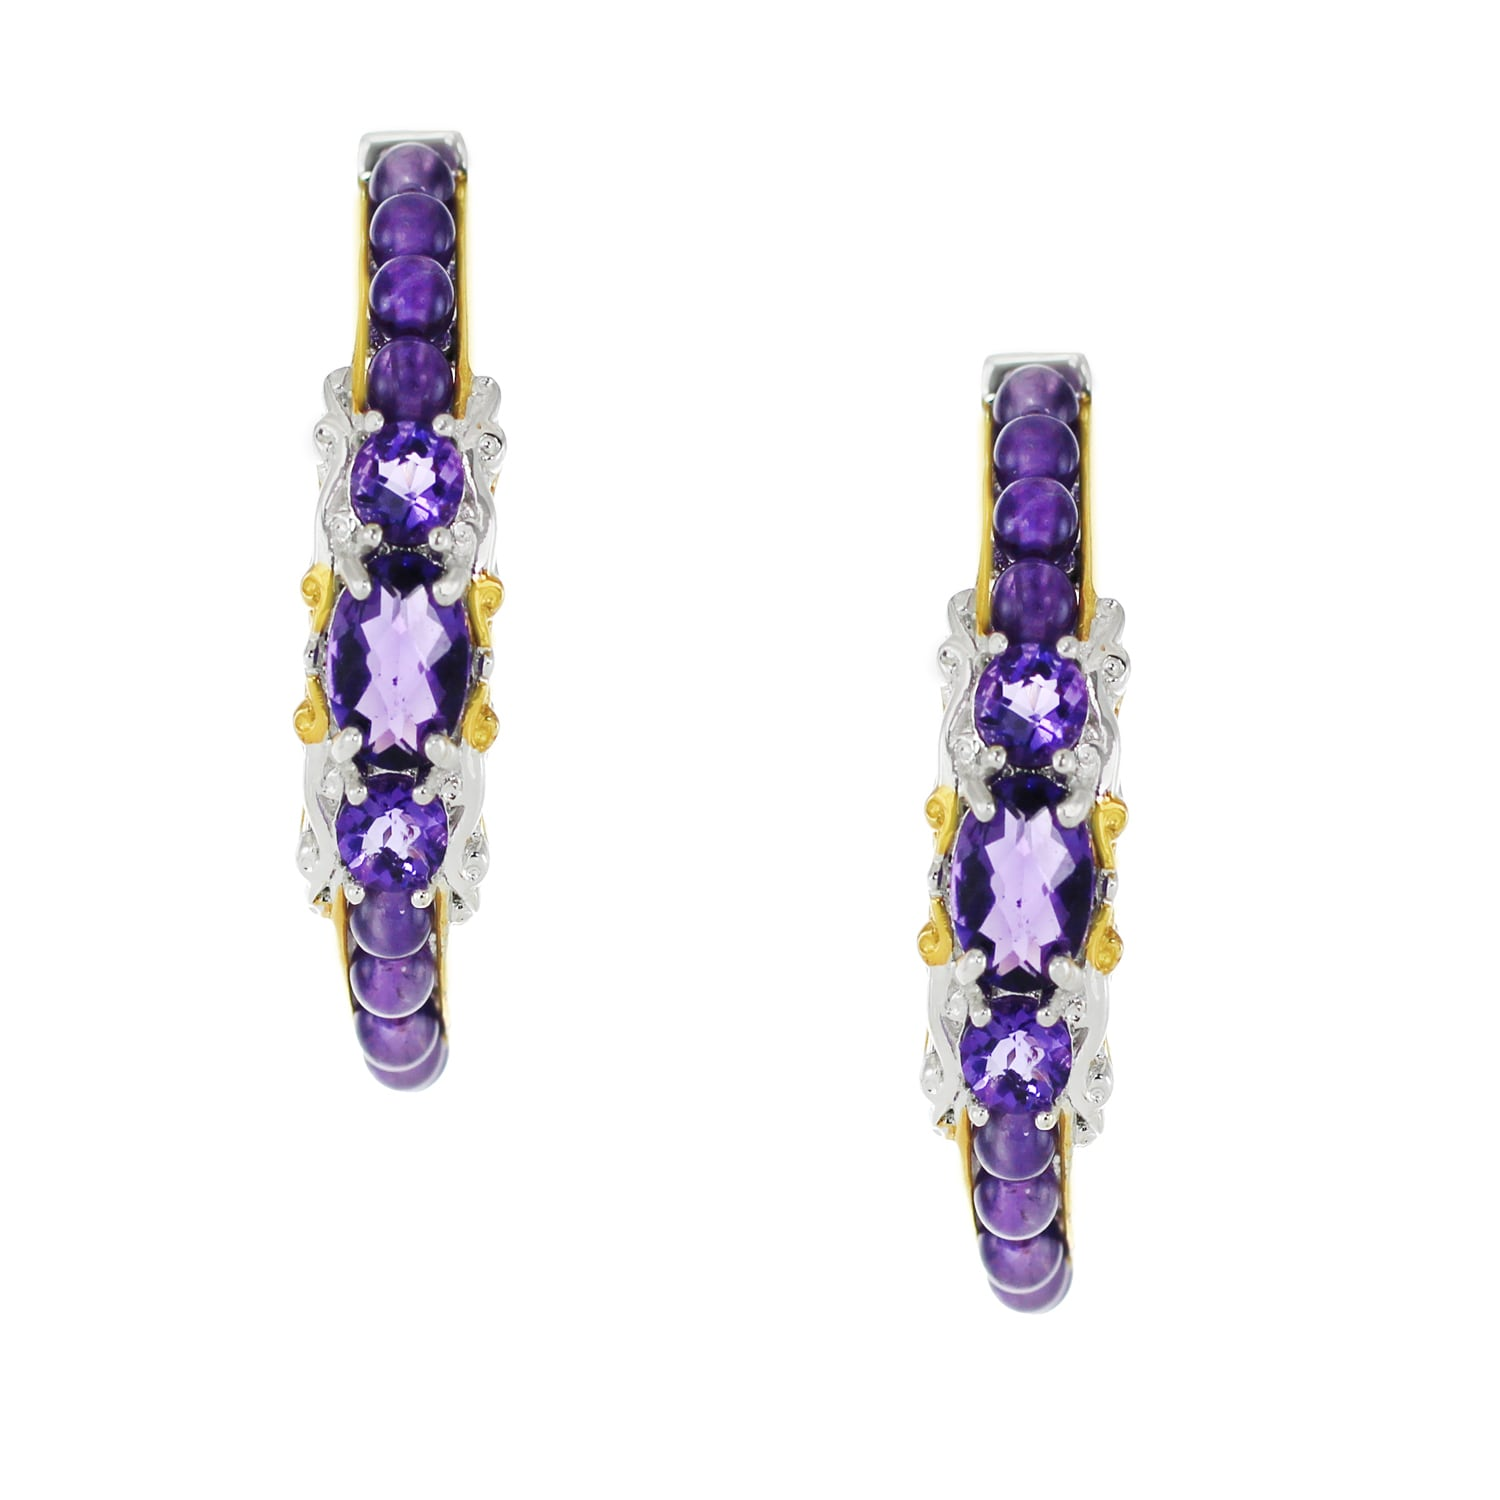 One Of A Kind Michael Valitutti Palladium Silver African Amethyst Earrings Free Shipping Today 13342623